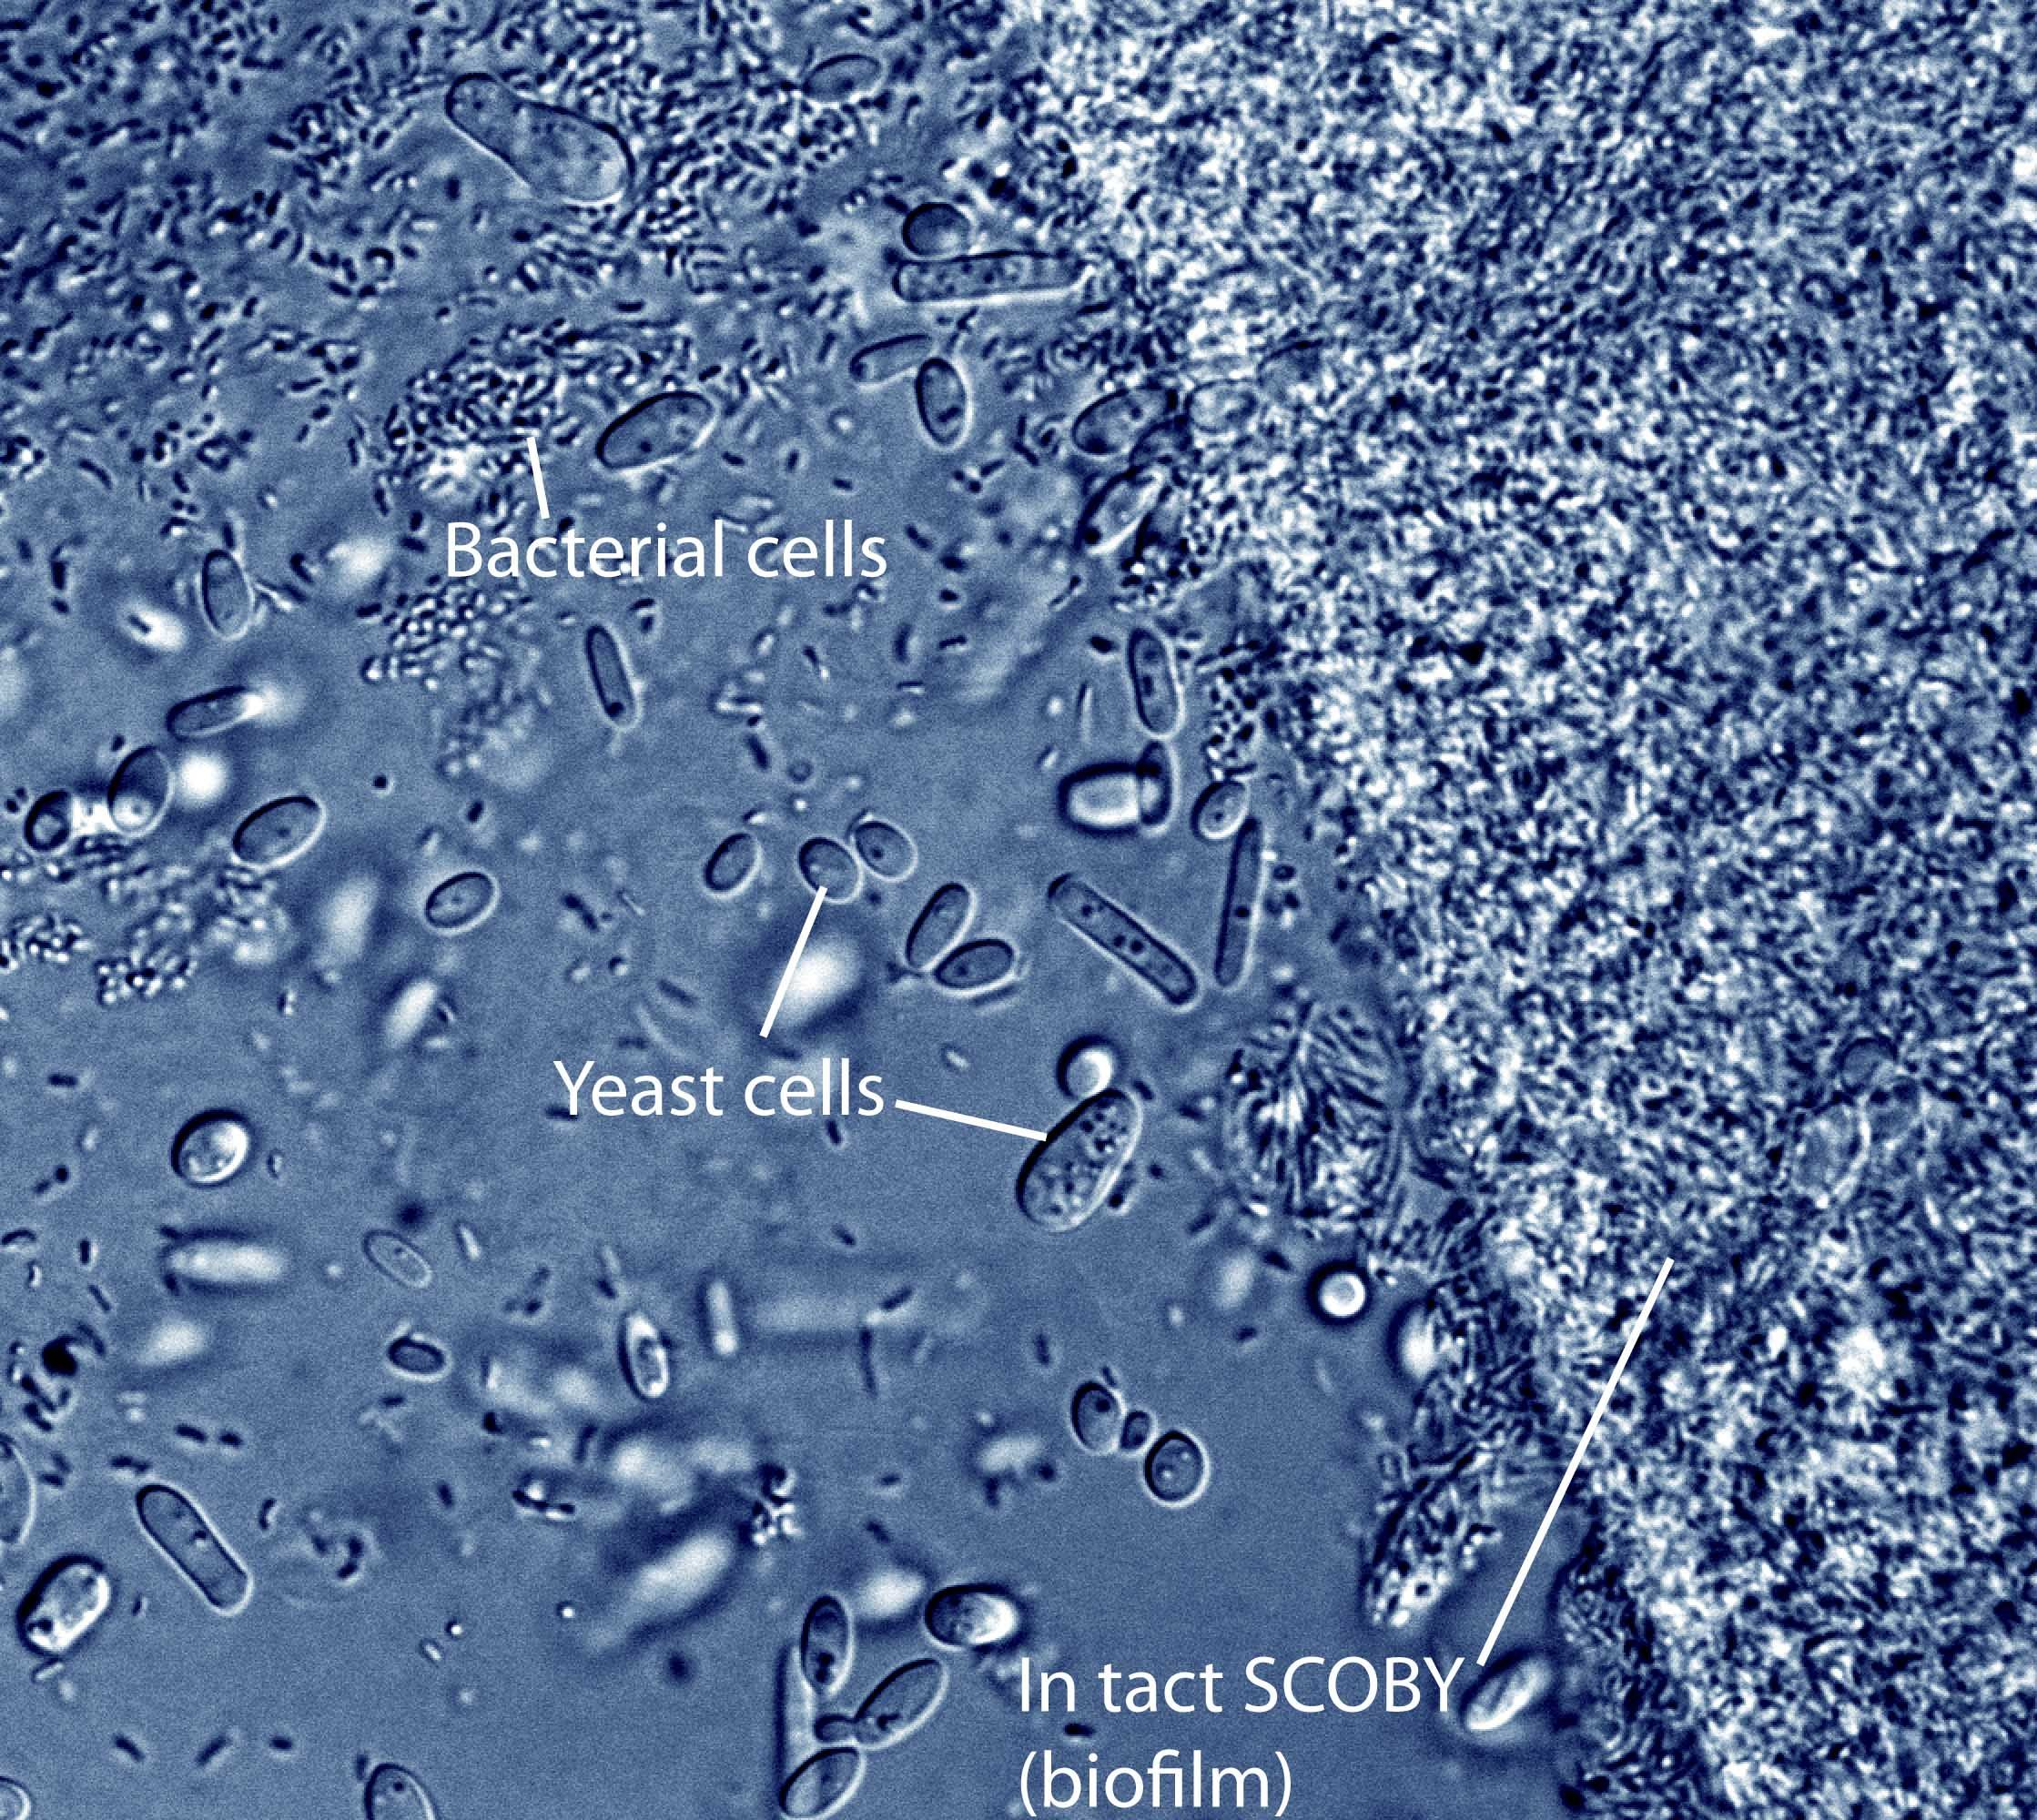 yeast cell 400x - photo #10